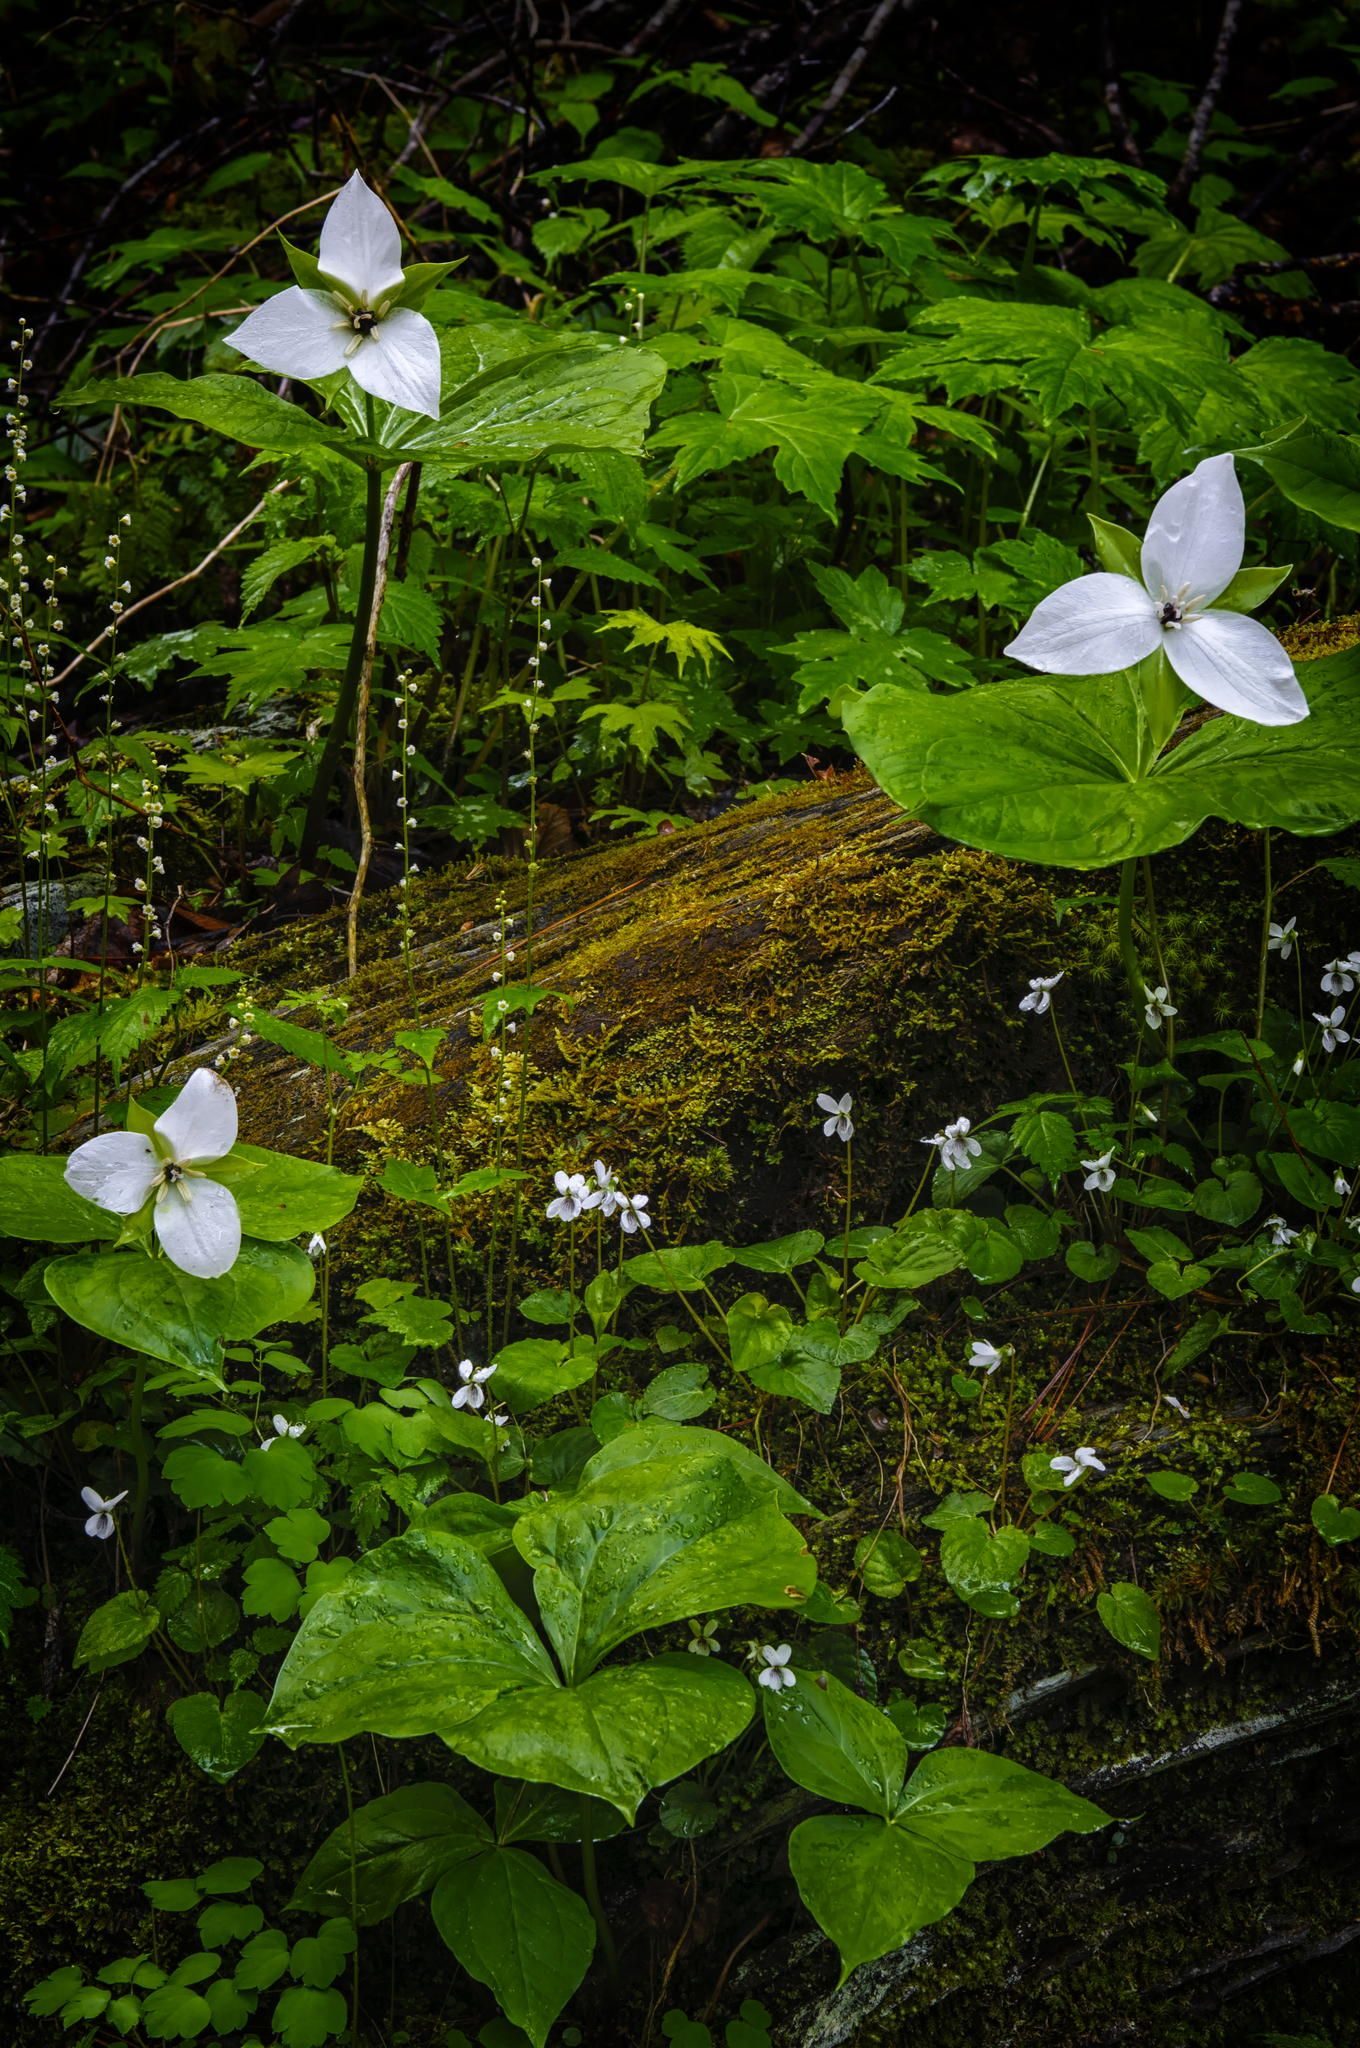 Forest Floor - Trillium, white violets, and bishop's cap